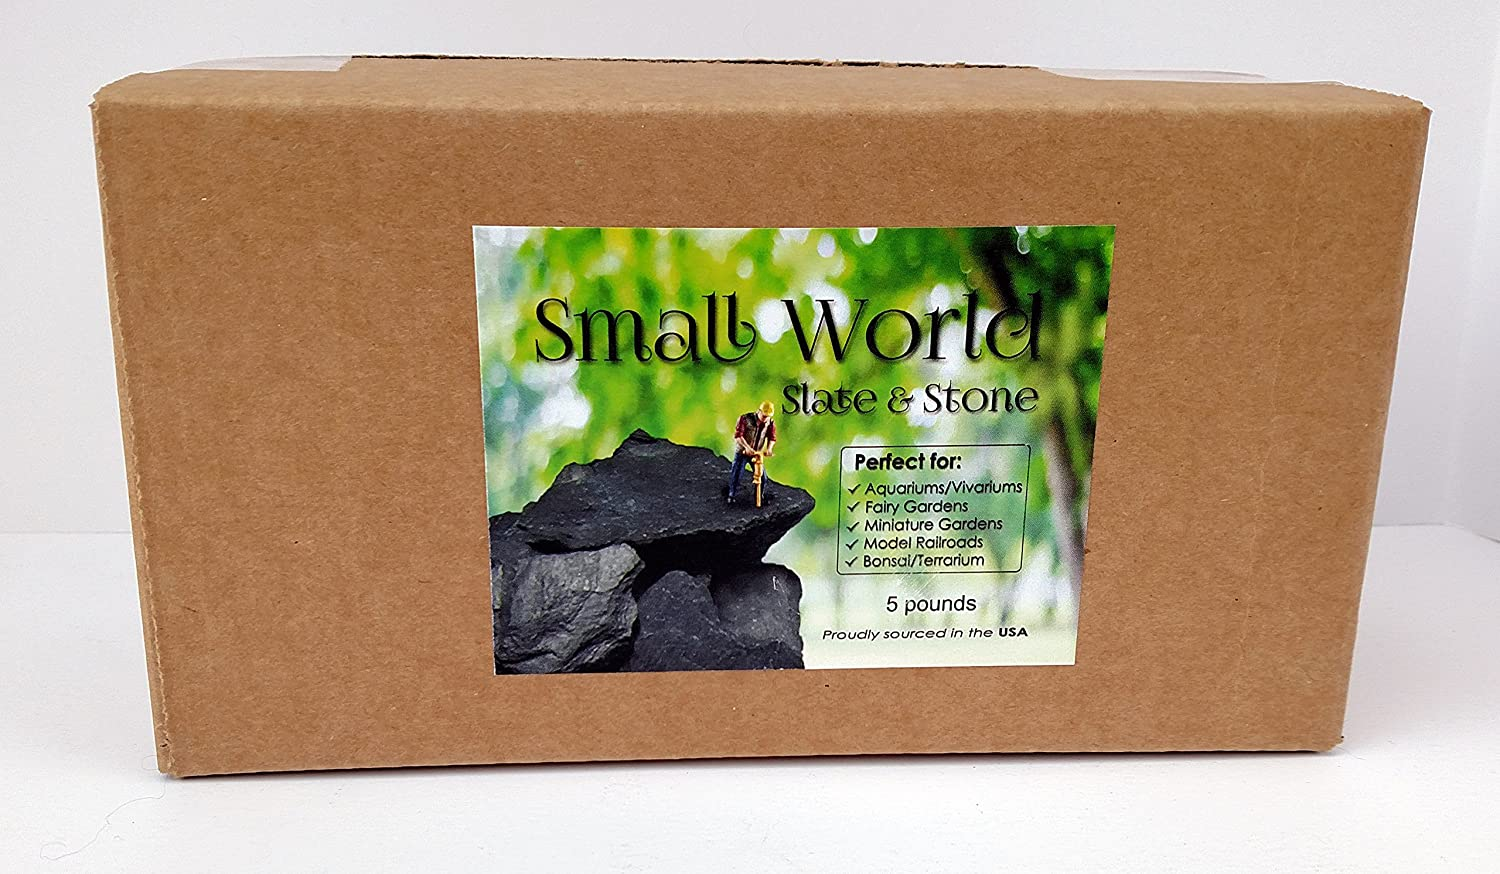 Natural Slate Stone 3 to 5 inch Rocks for Miniature and Fairy Garden Aquascaping Aquariums Reptile enclosures /& Model Railroad. 5lbs